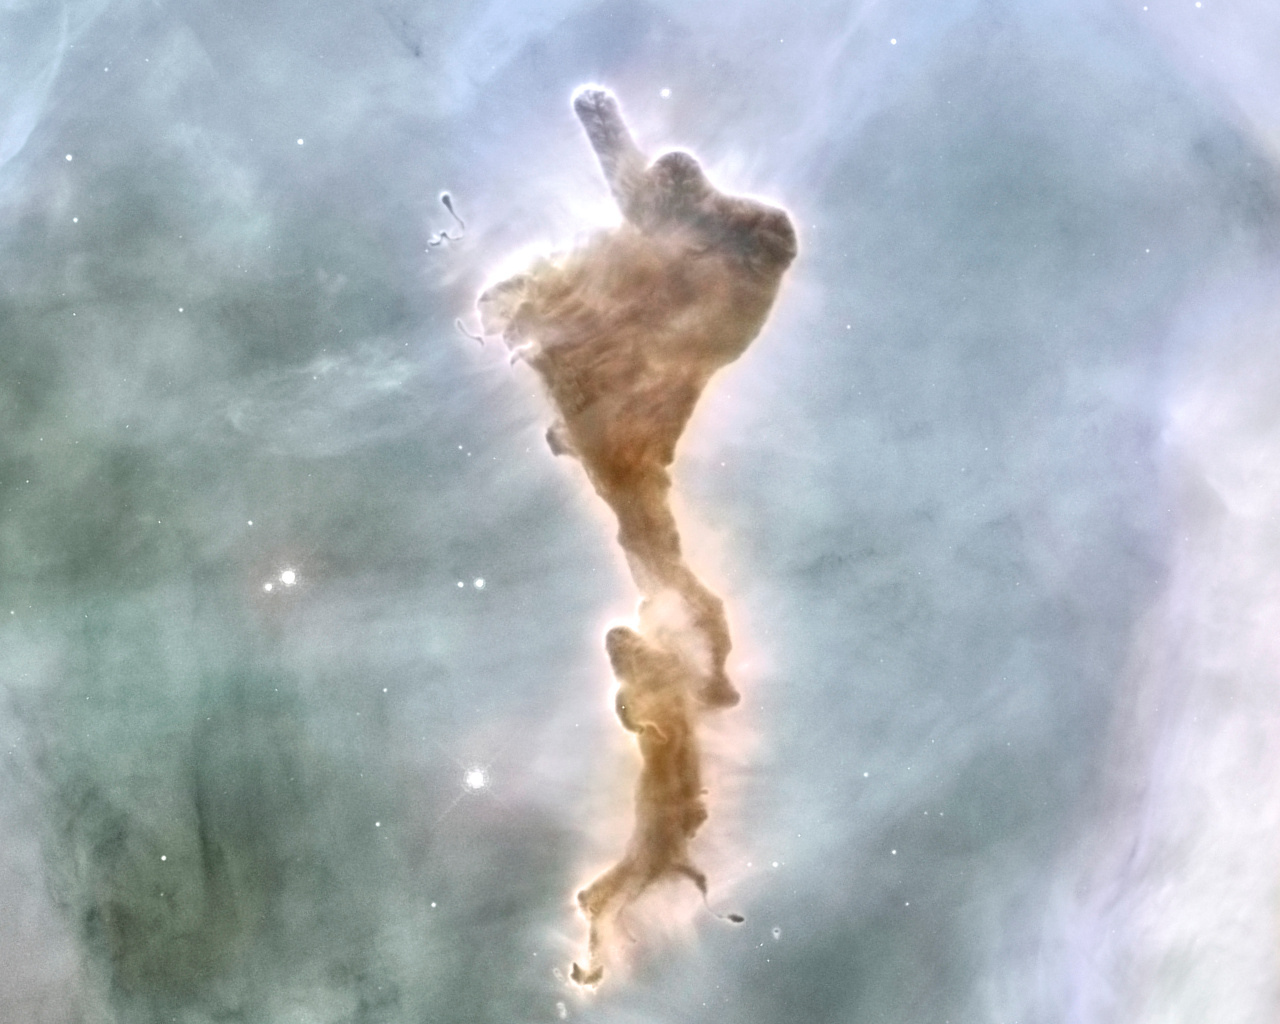 _Finger_of_God__Bok_globule_in_the_Carina_Nebula.jpg